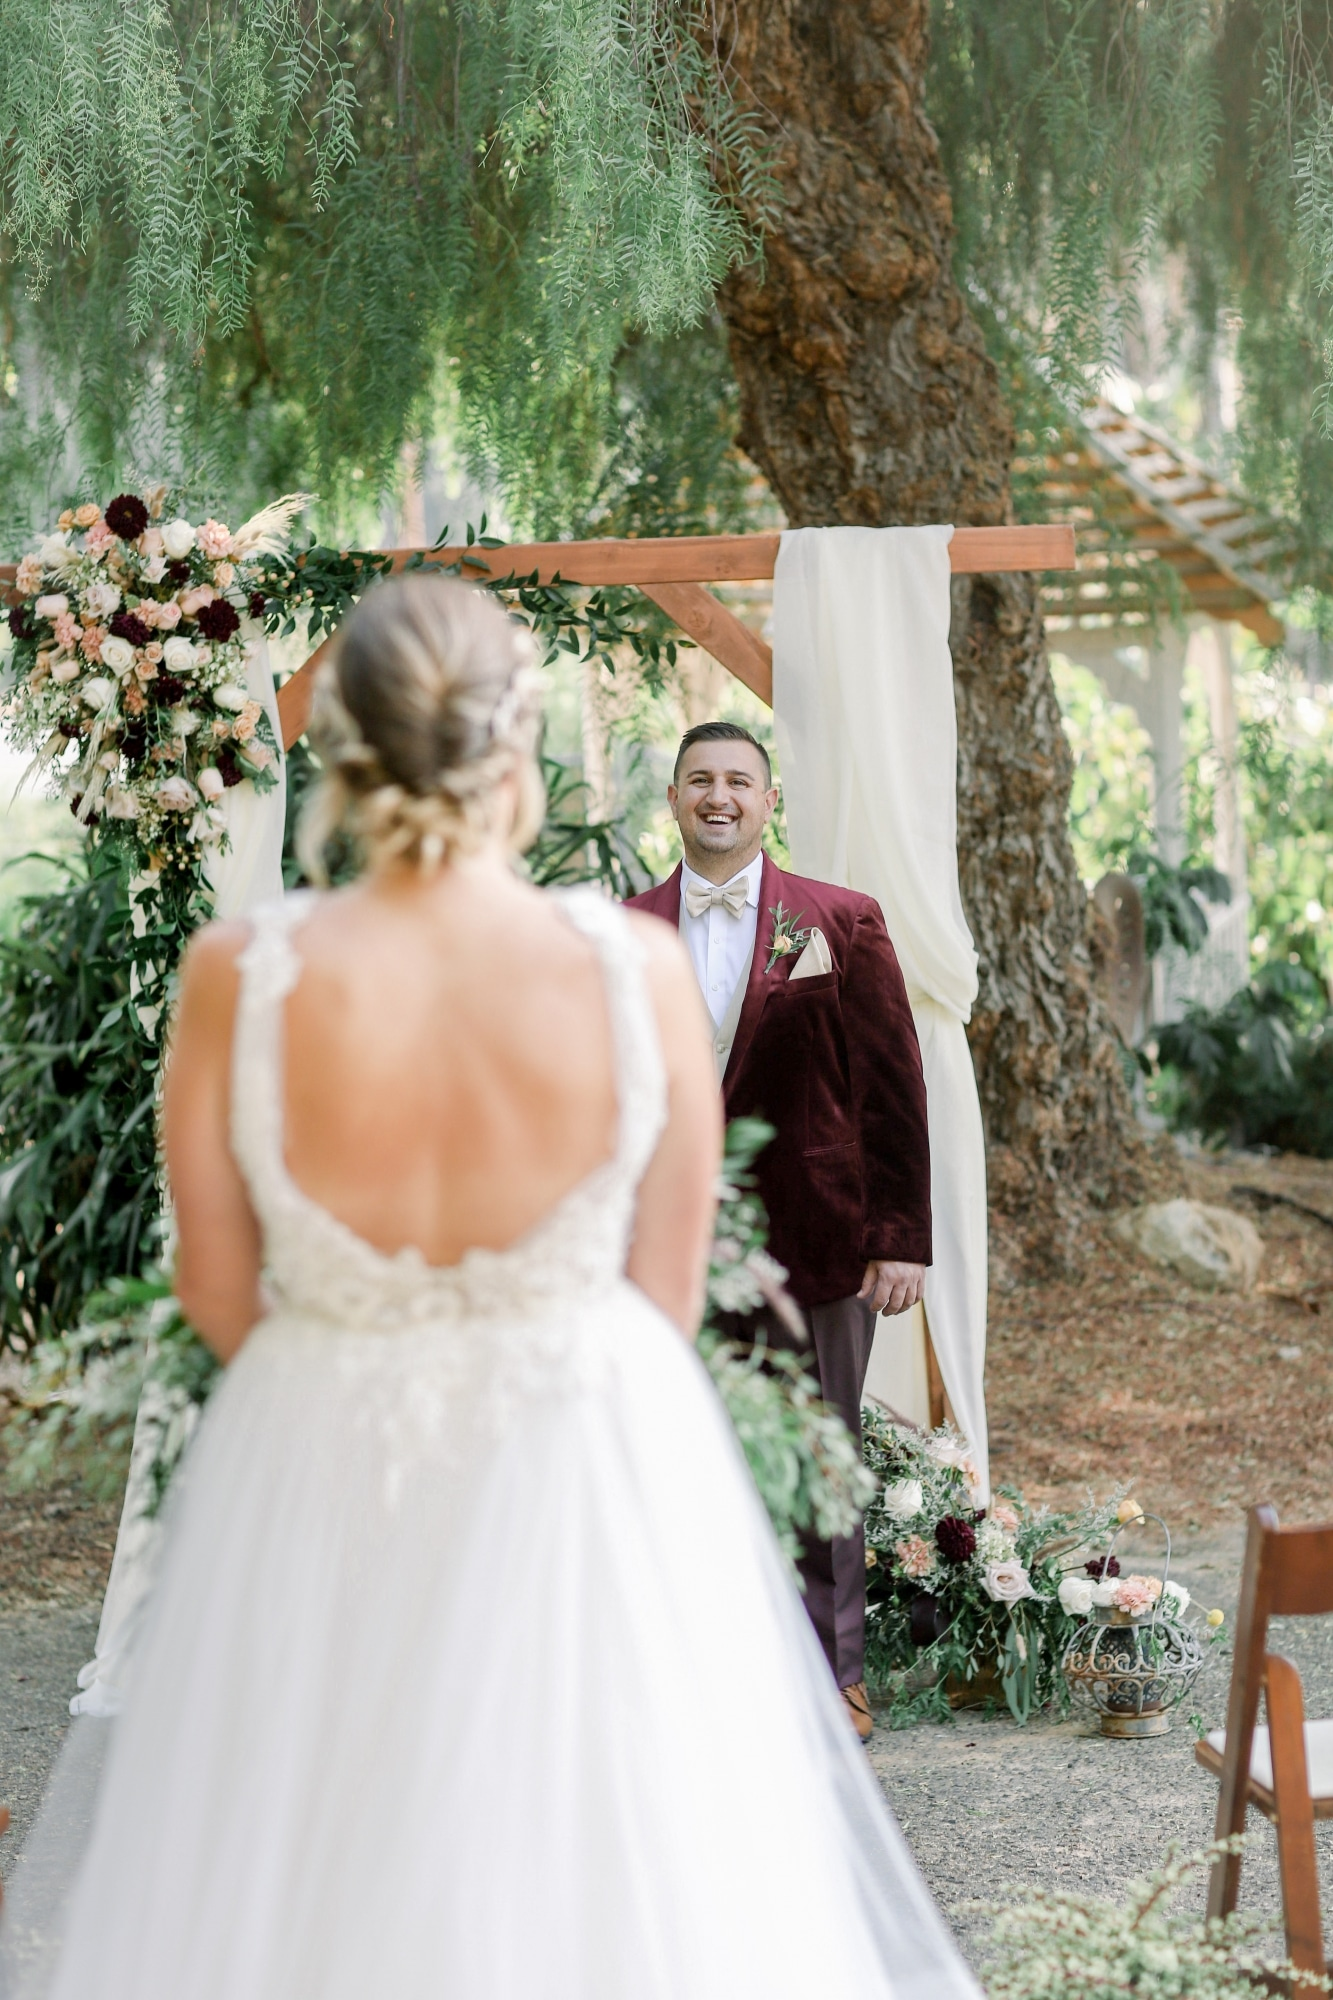 groom smiling as the bride walks down the aisle